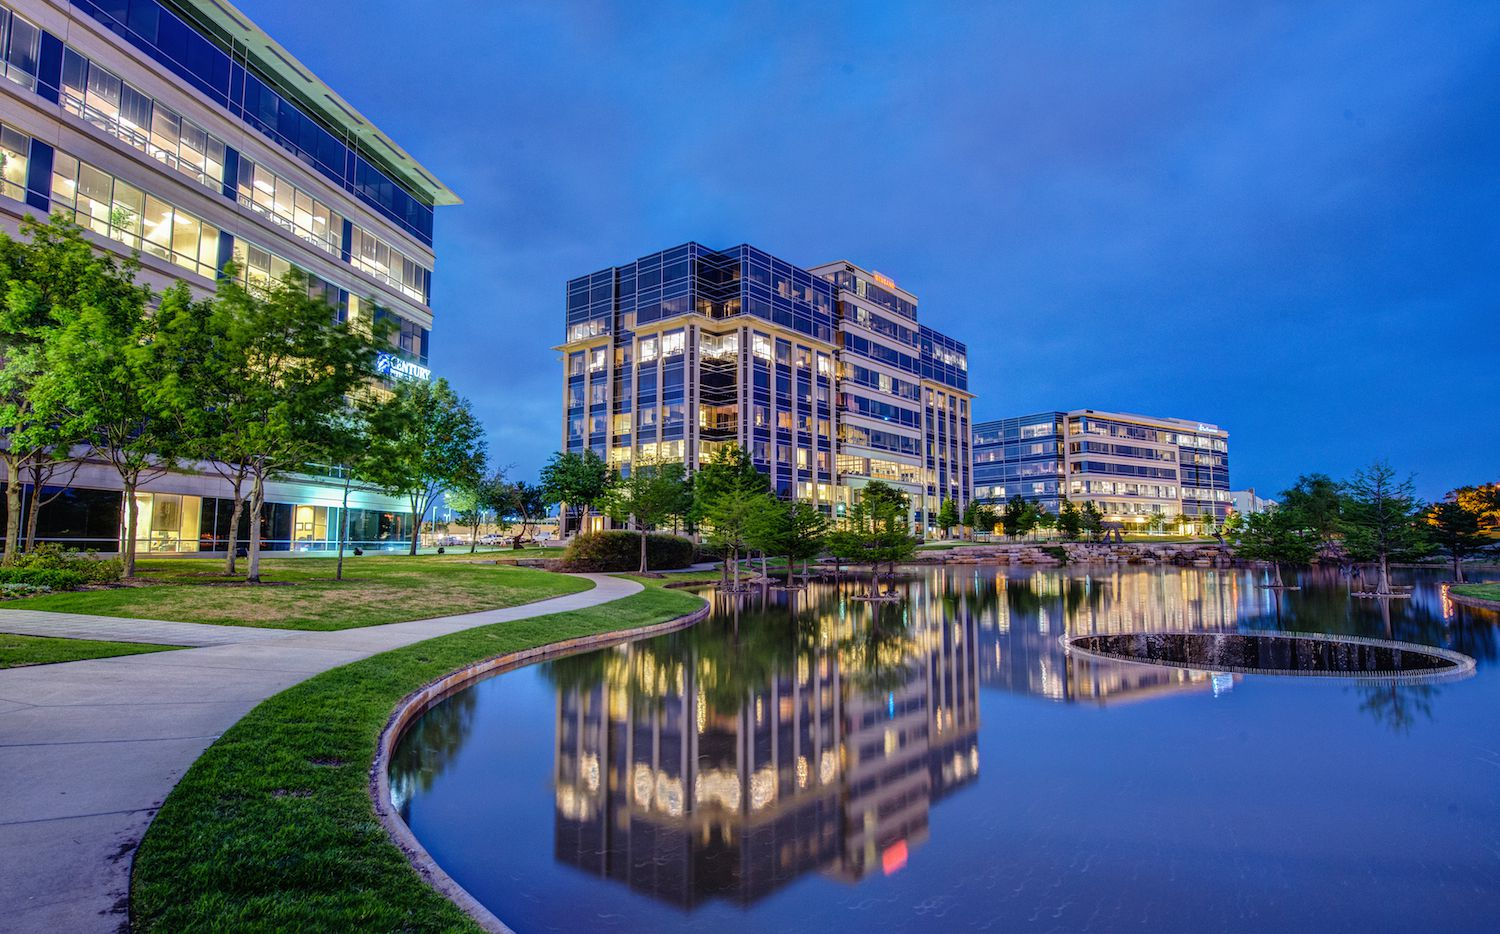 Hall Park is home to more than 10,000 office workers.